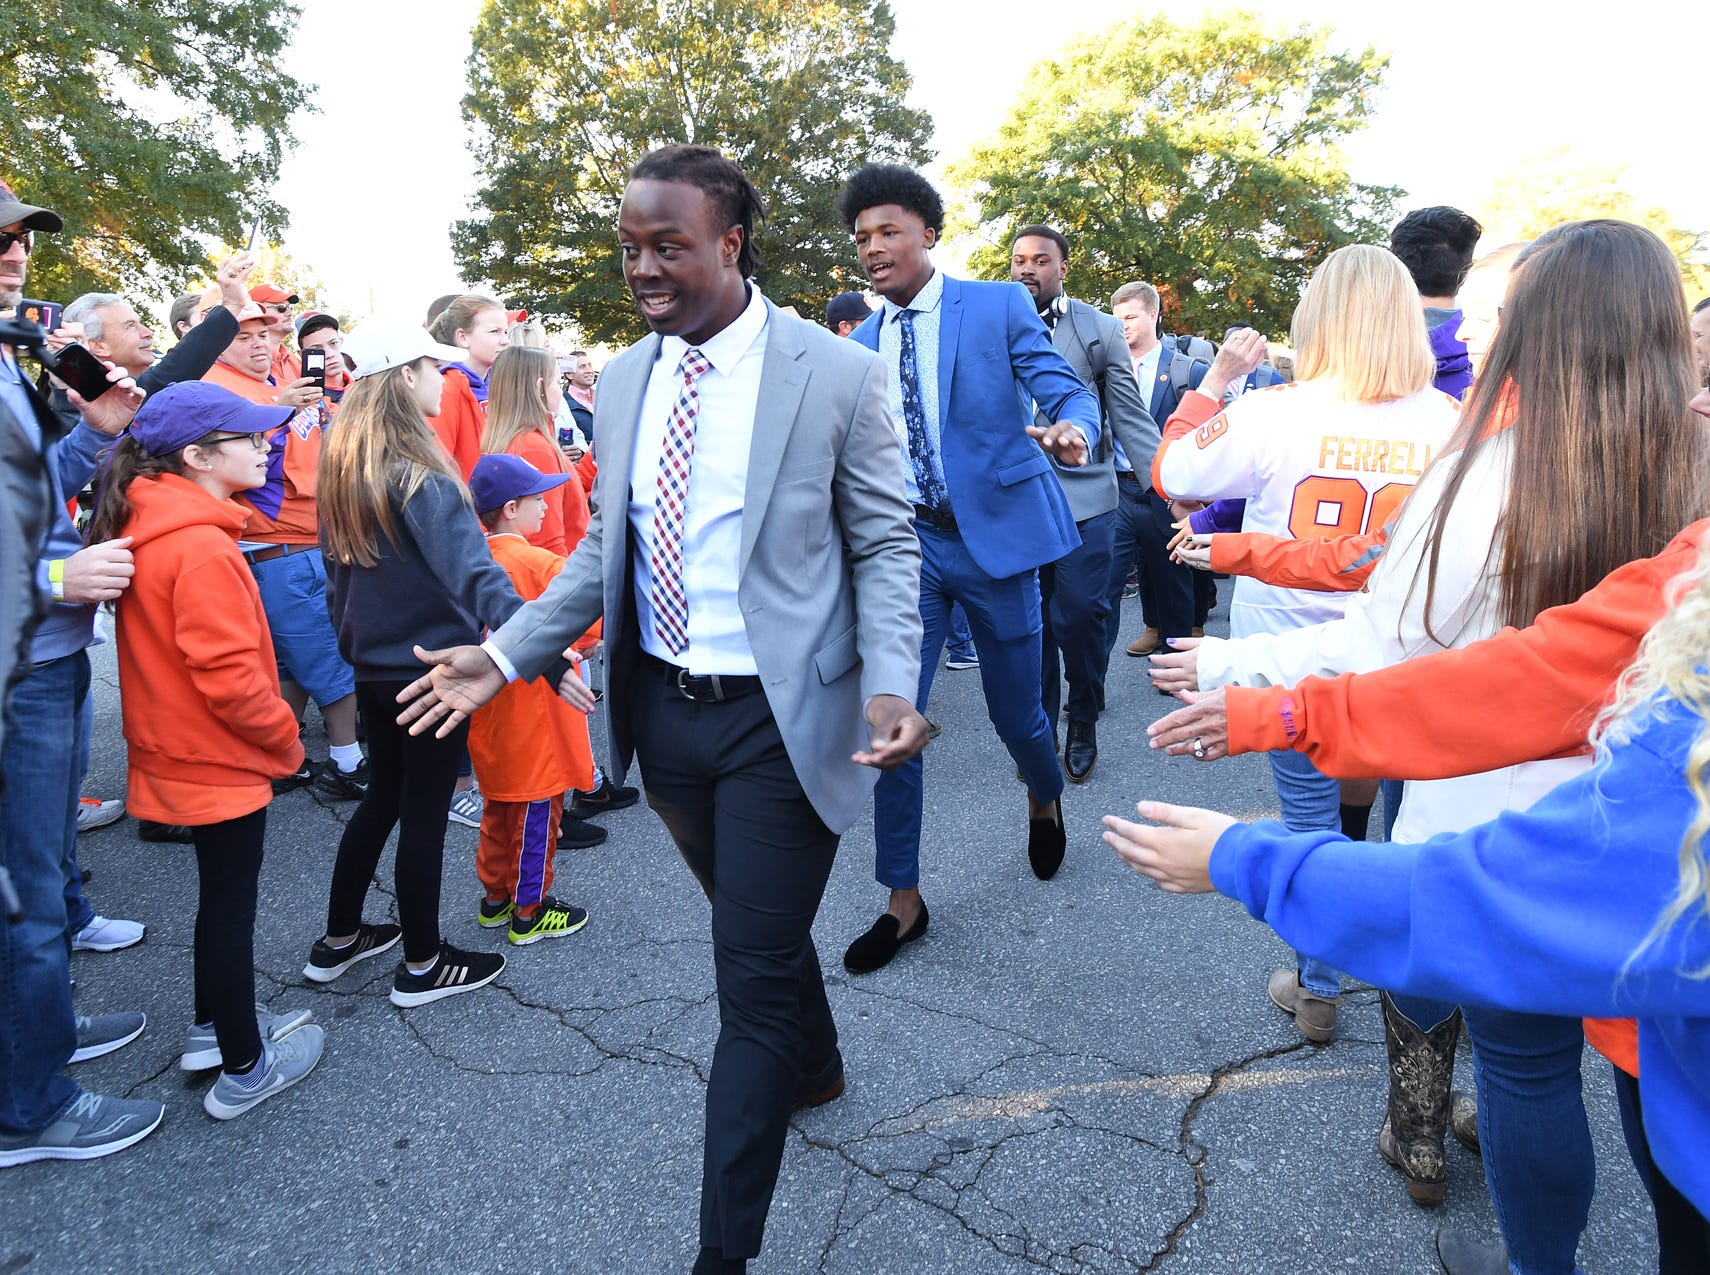 Clemson running back Travis Etienne takes part in Tiger Walk before the Tiger's game against Louisville Saturday, November 3, 2018 at Clemson's Memorial Stadium.